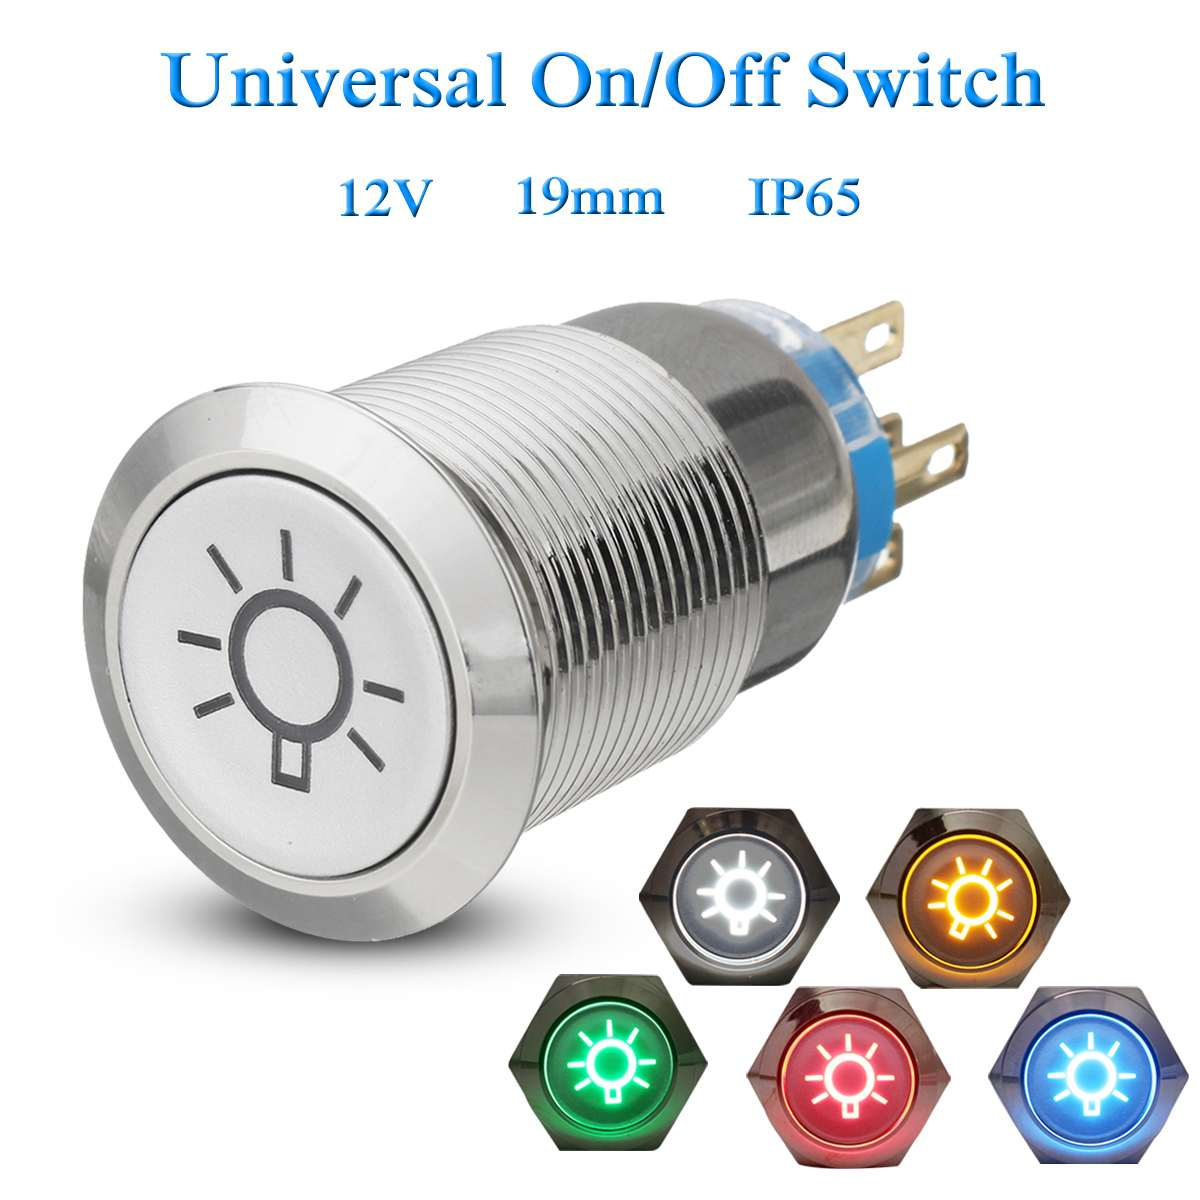 1 Circuit Momentary SPST-NO ON Push Button Switch Black 3A 250V OFF-